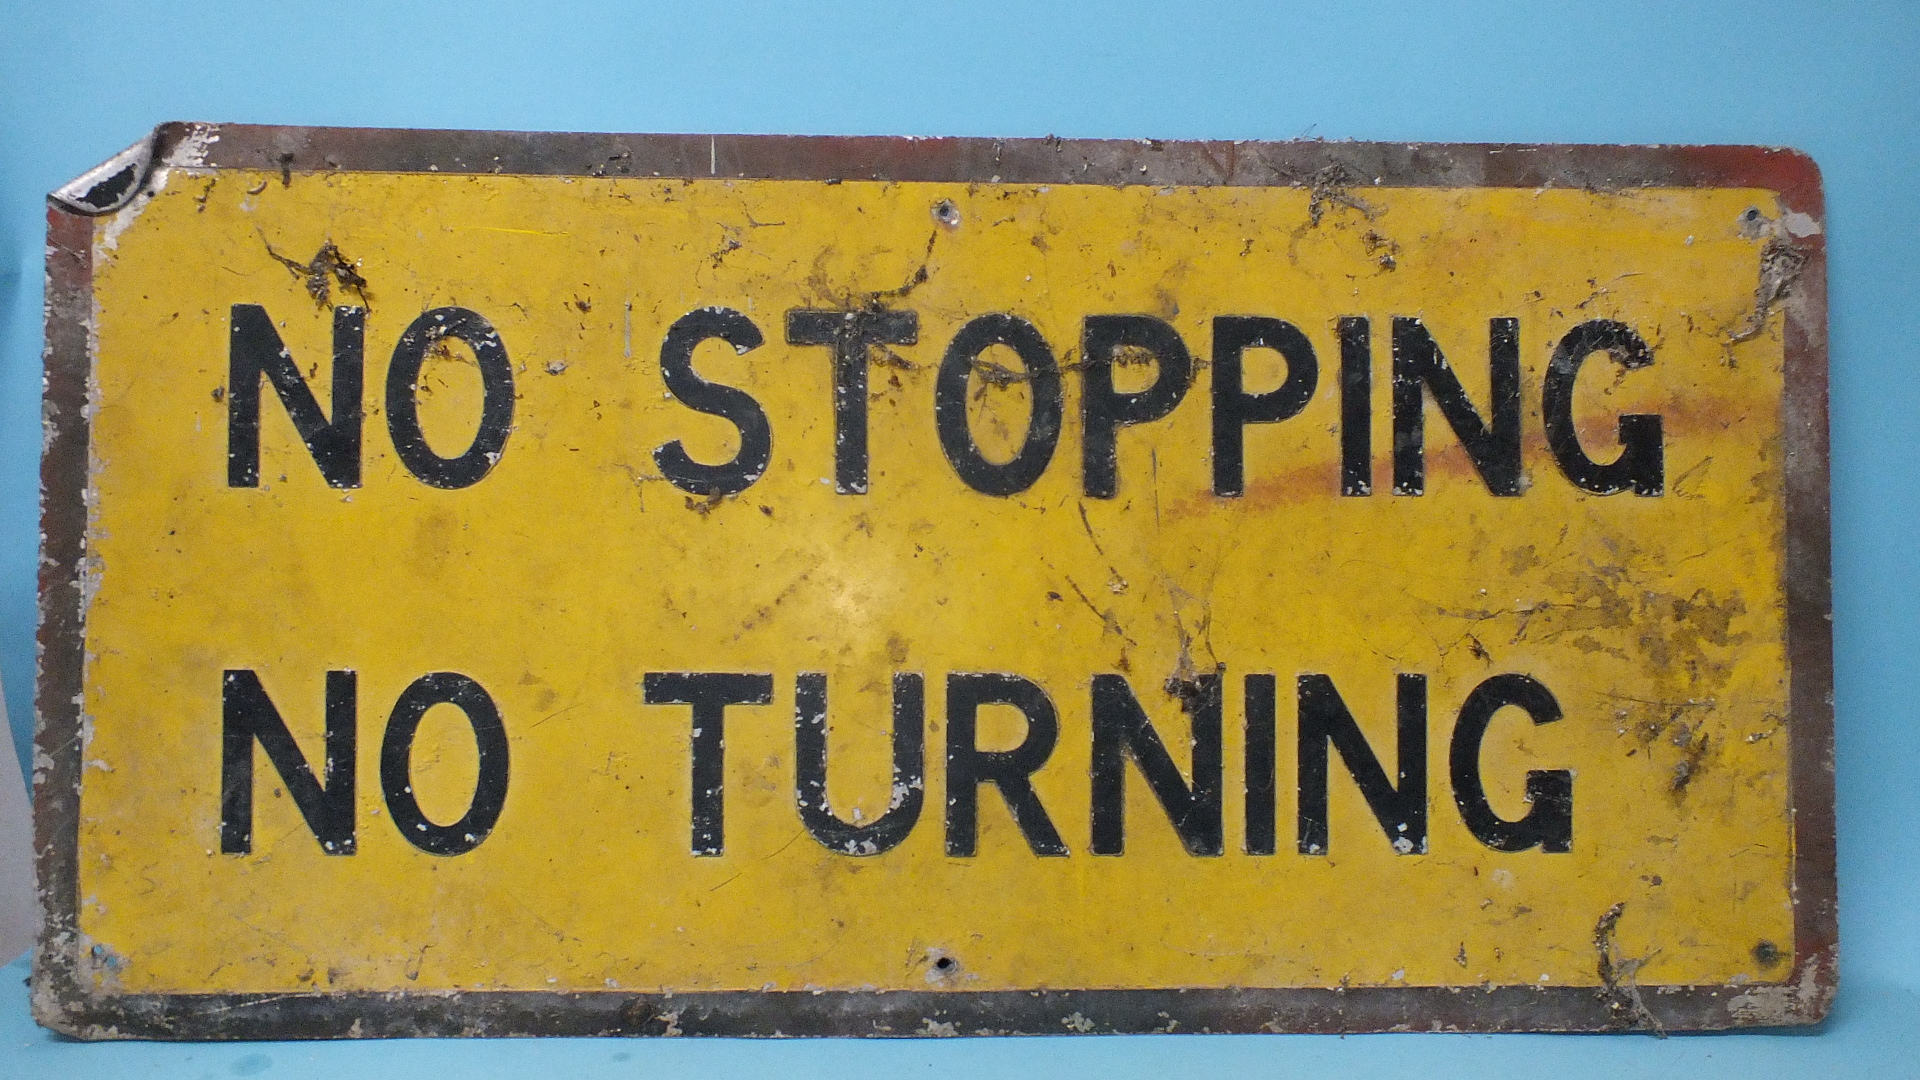 """Lot 363 - A yellow and black enamel road sign, """"No Stopping No Turning"""", 51 x 100.5cm, (a/f, one corner"""